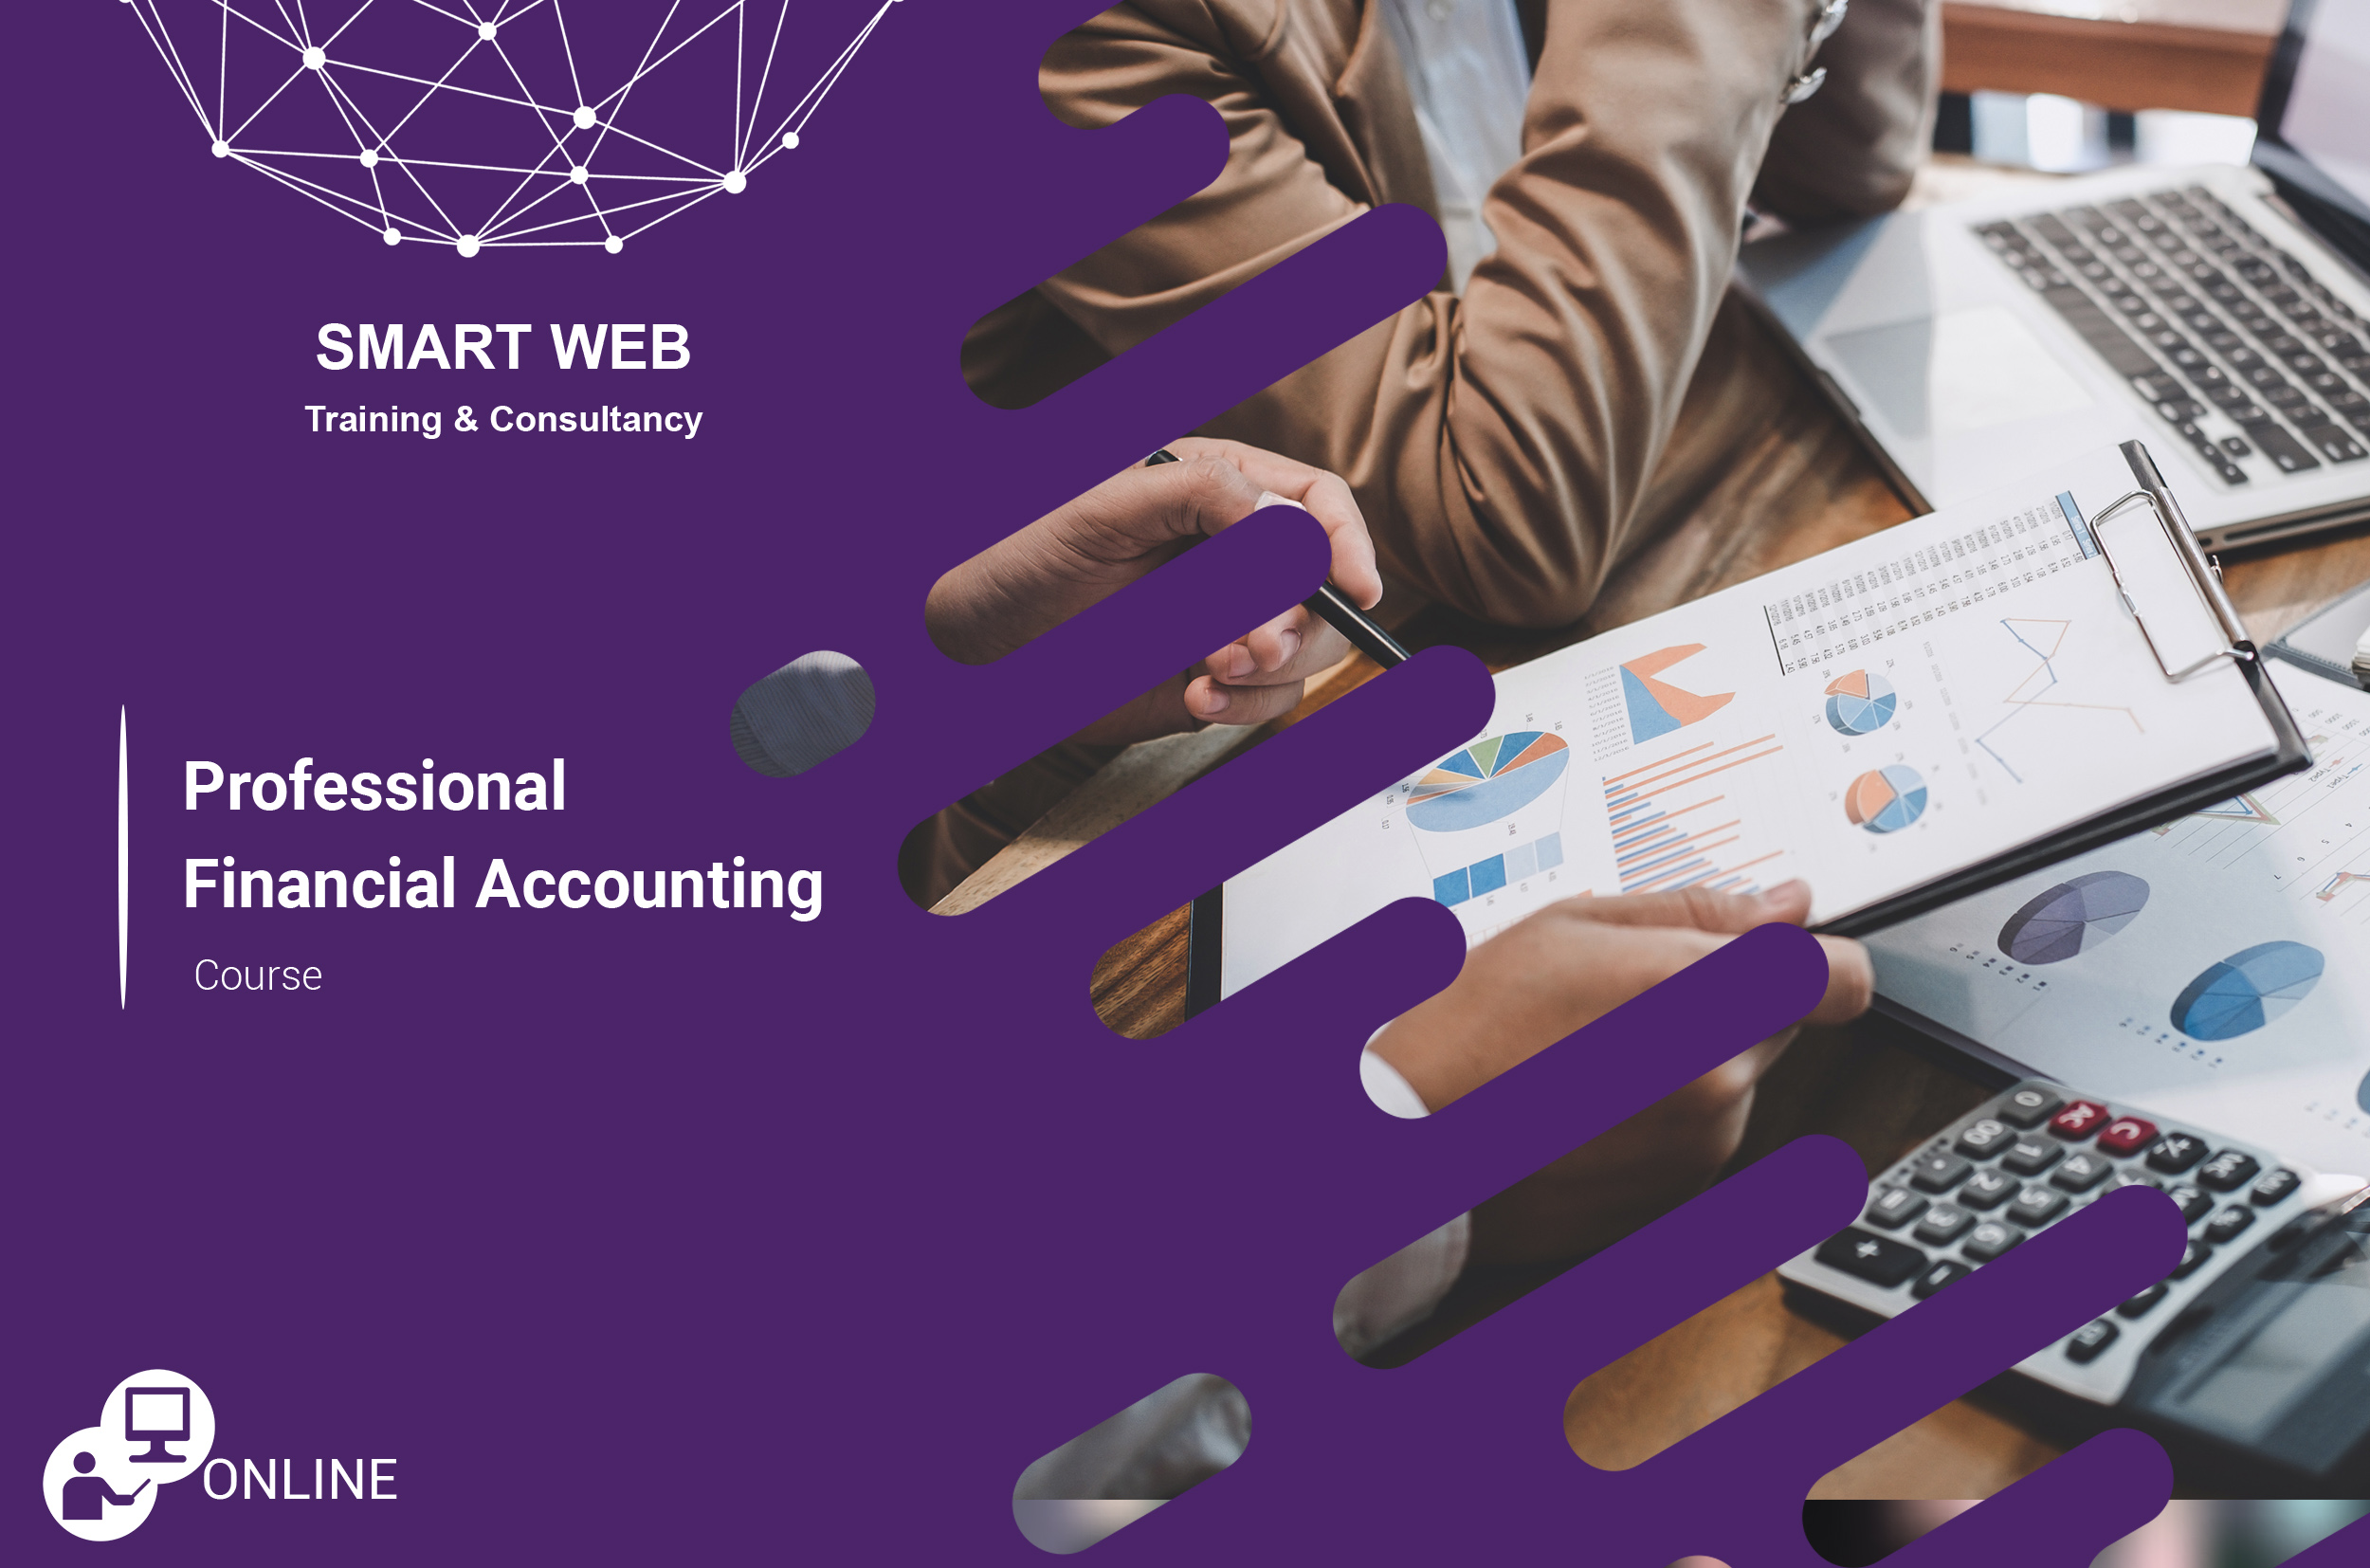 Professional Financial Accounting